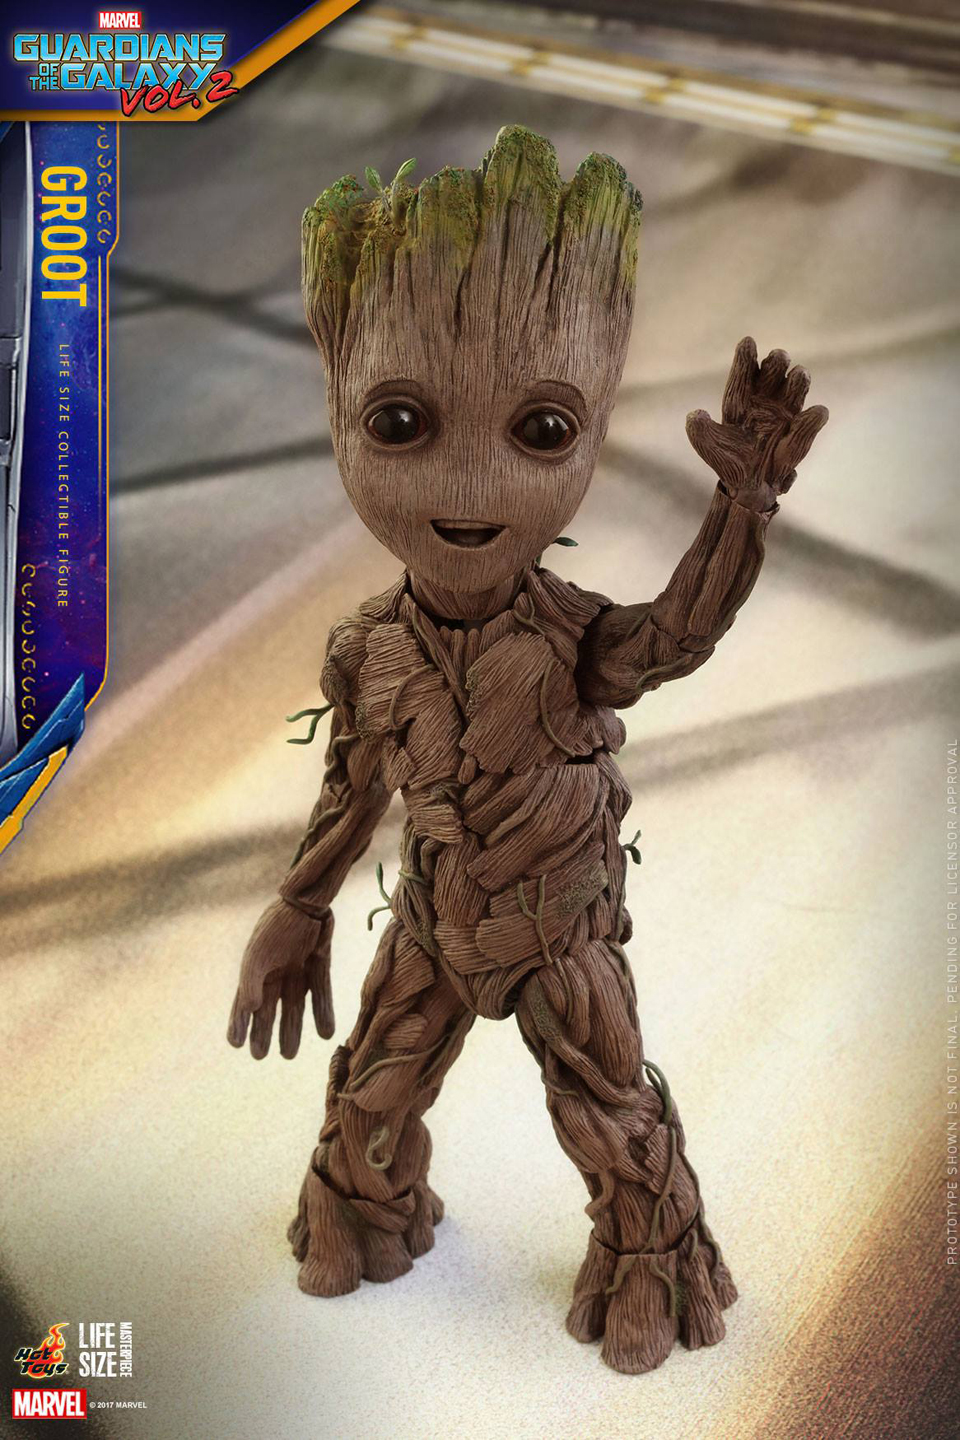 GotG Vol. 2 Life-size Groot Figure